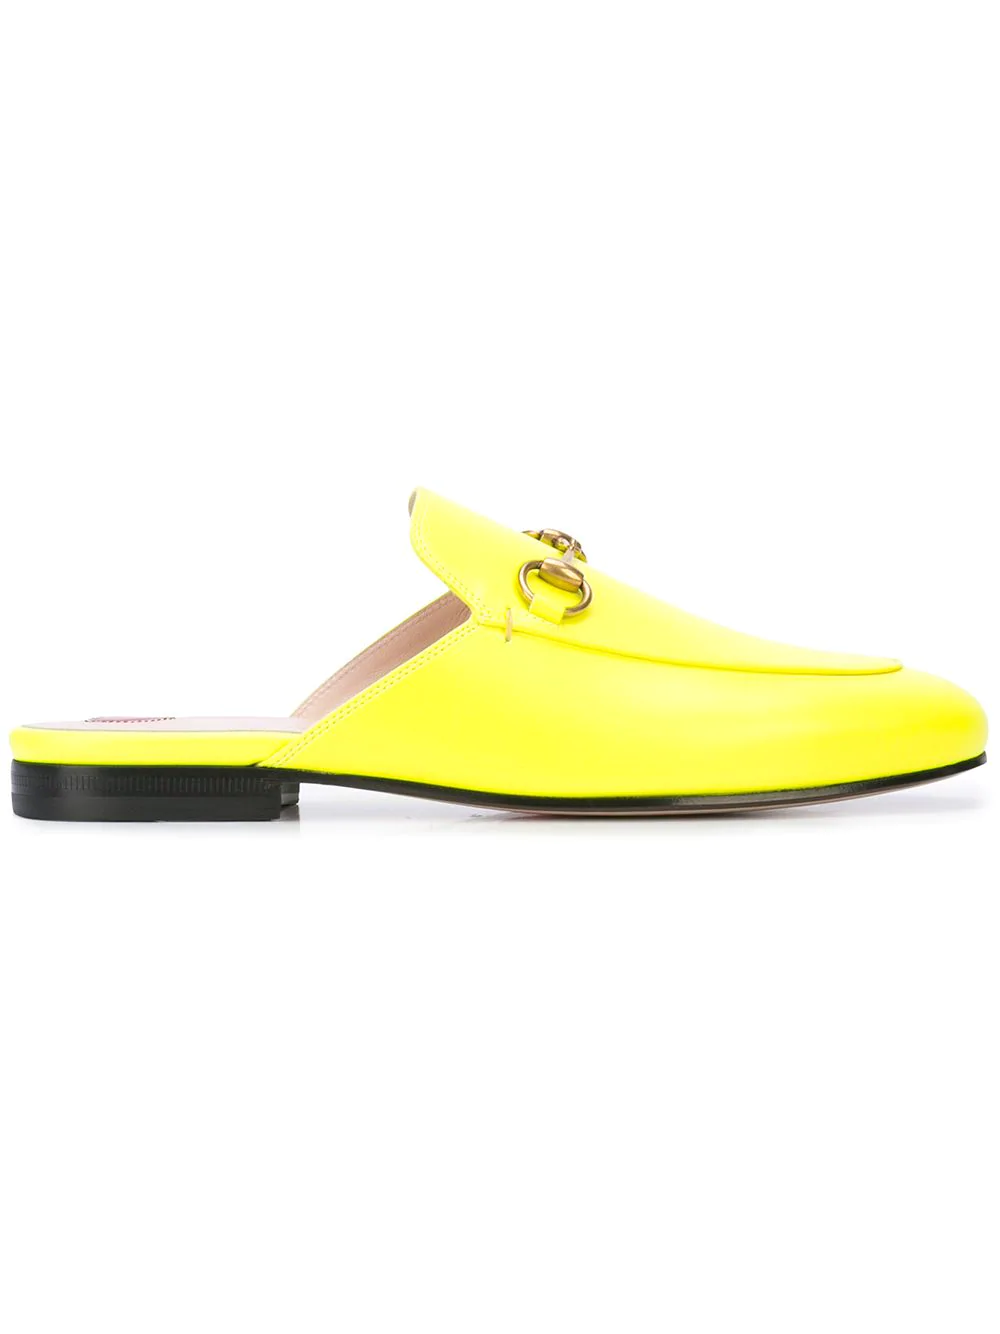 bfea06ce0de Gucci Princetown Leather Slippers In Yellow